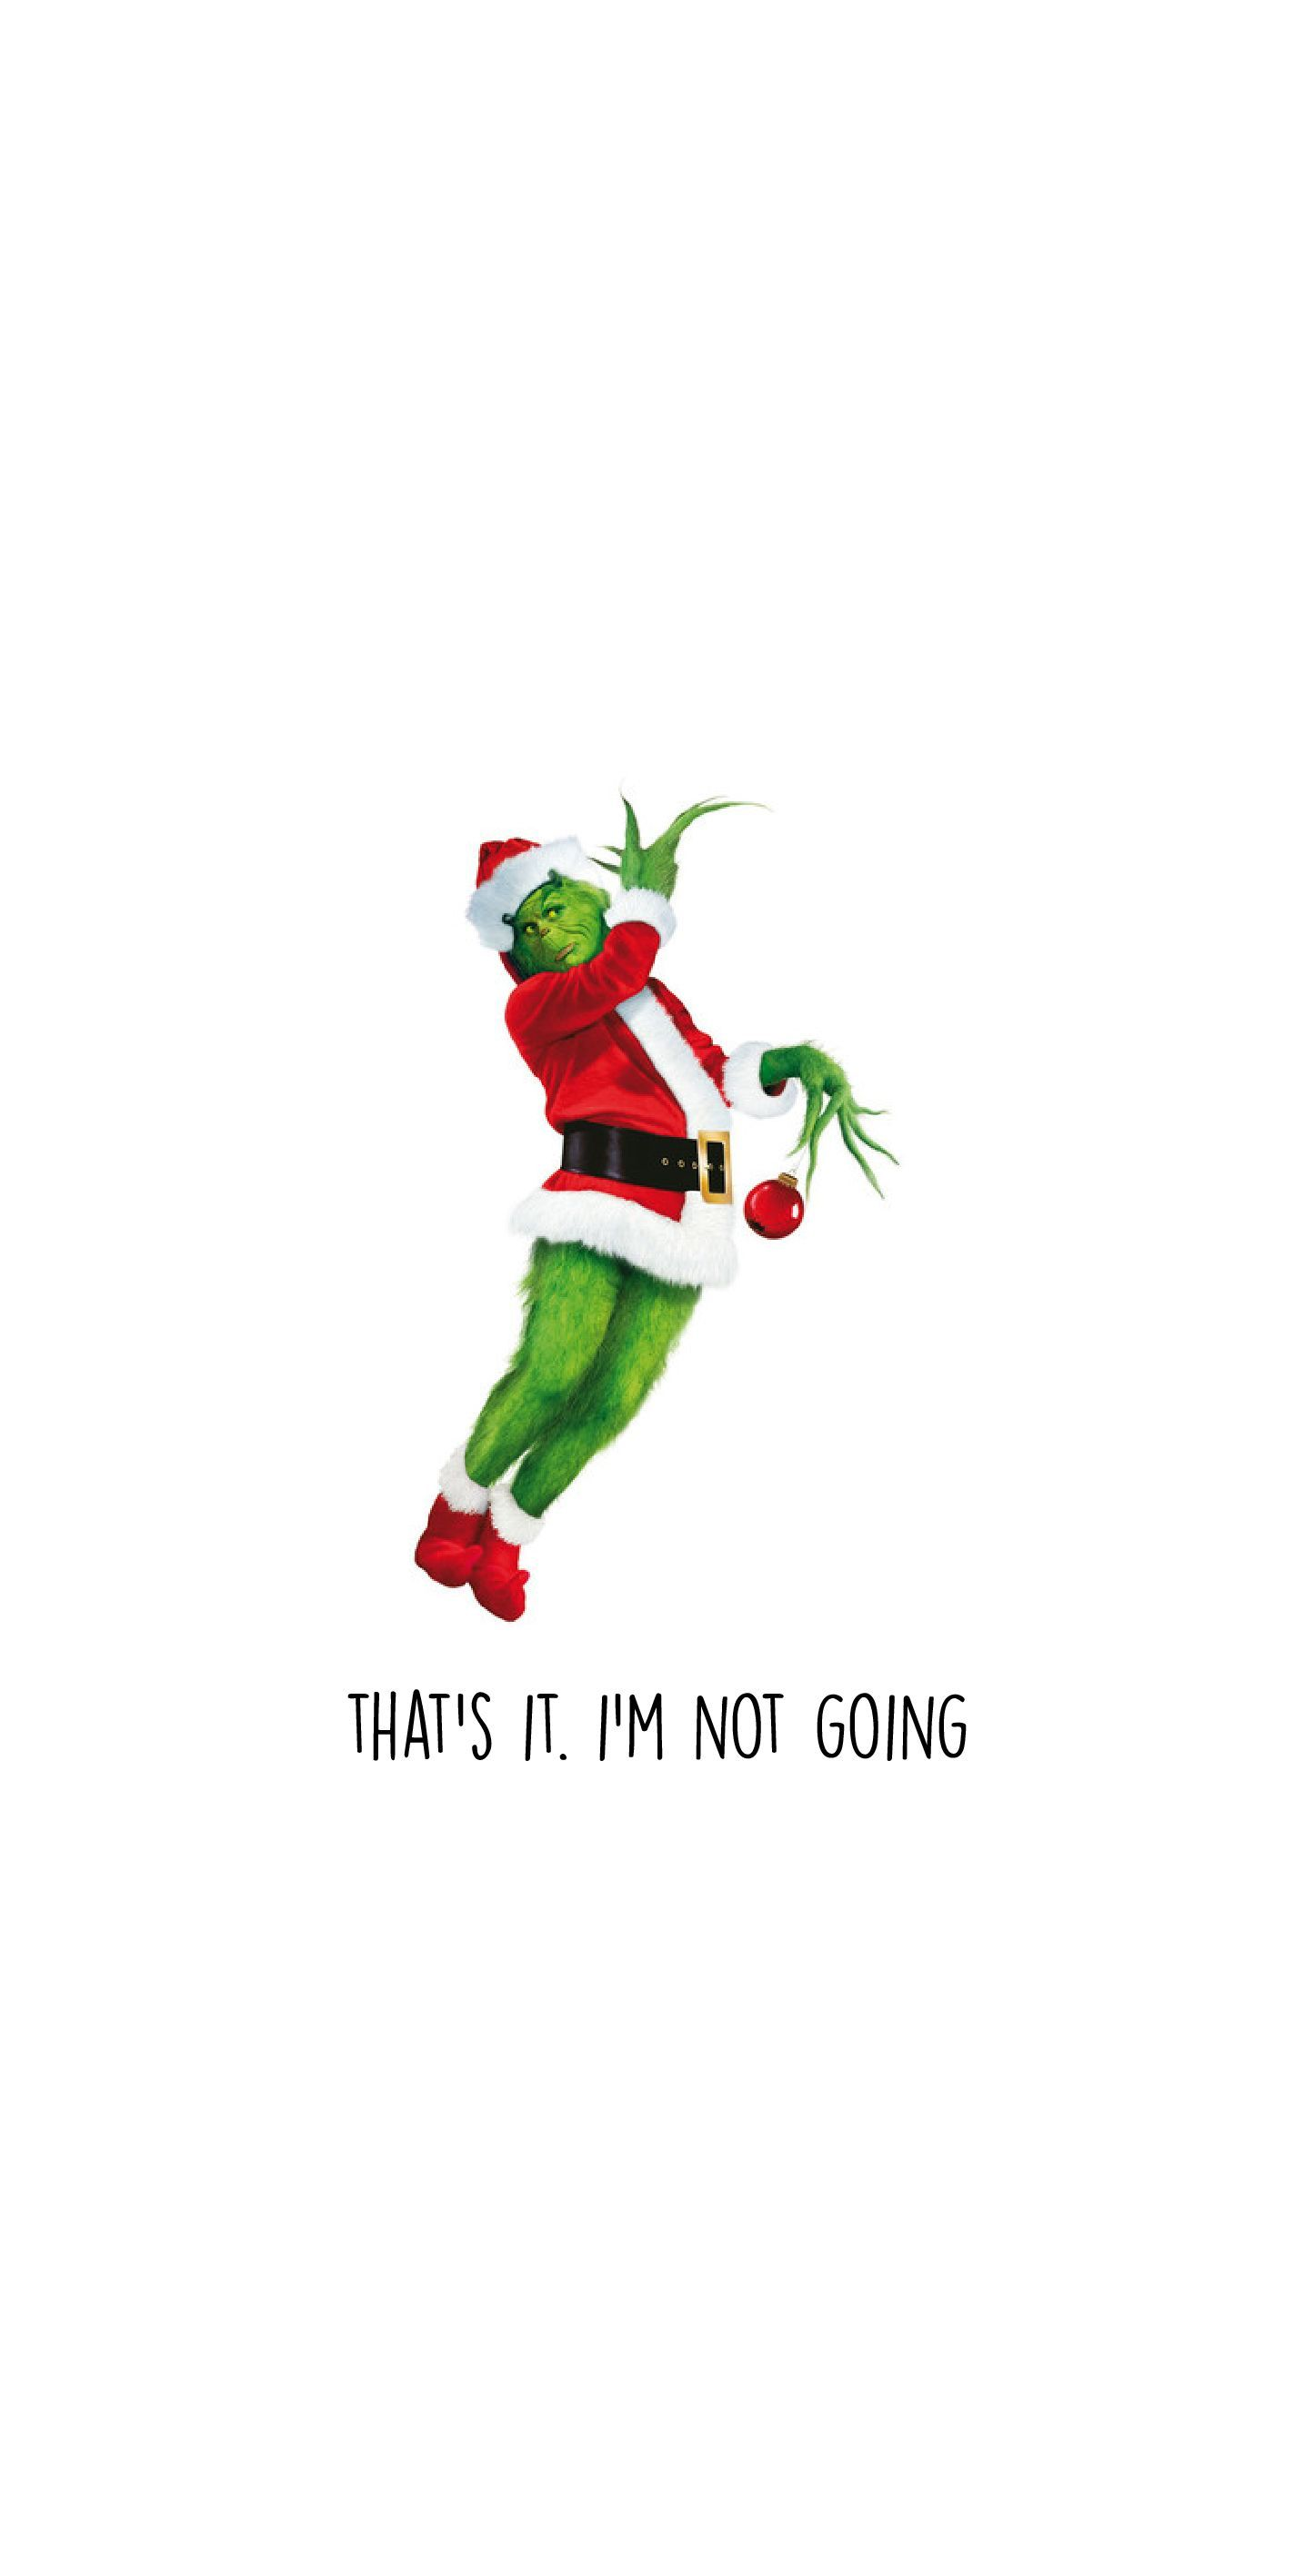 The Funniest Holiday Grinch Wallpapers For You Iphone Iphonewallpaper Iphone W Cute Christmas Wallpaper Holiday Iphone Wallpaper Wallpaper Iphone Christmas